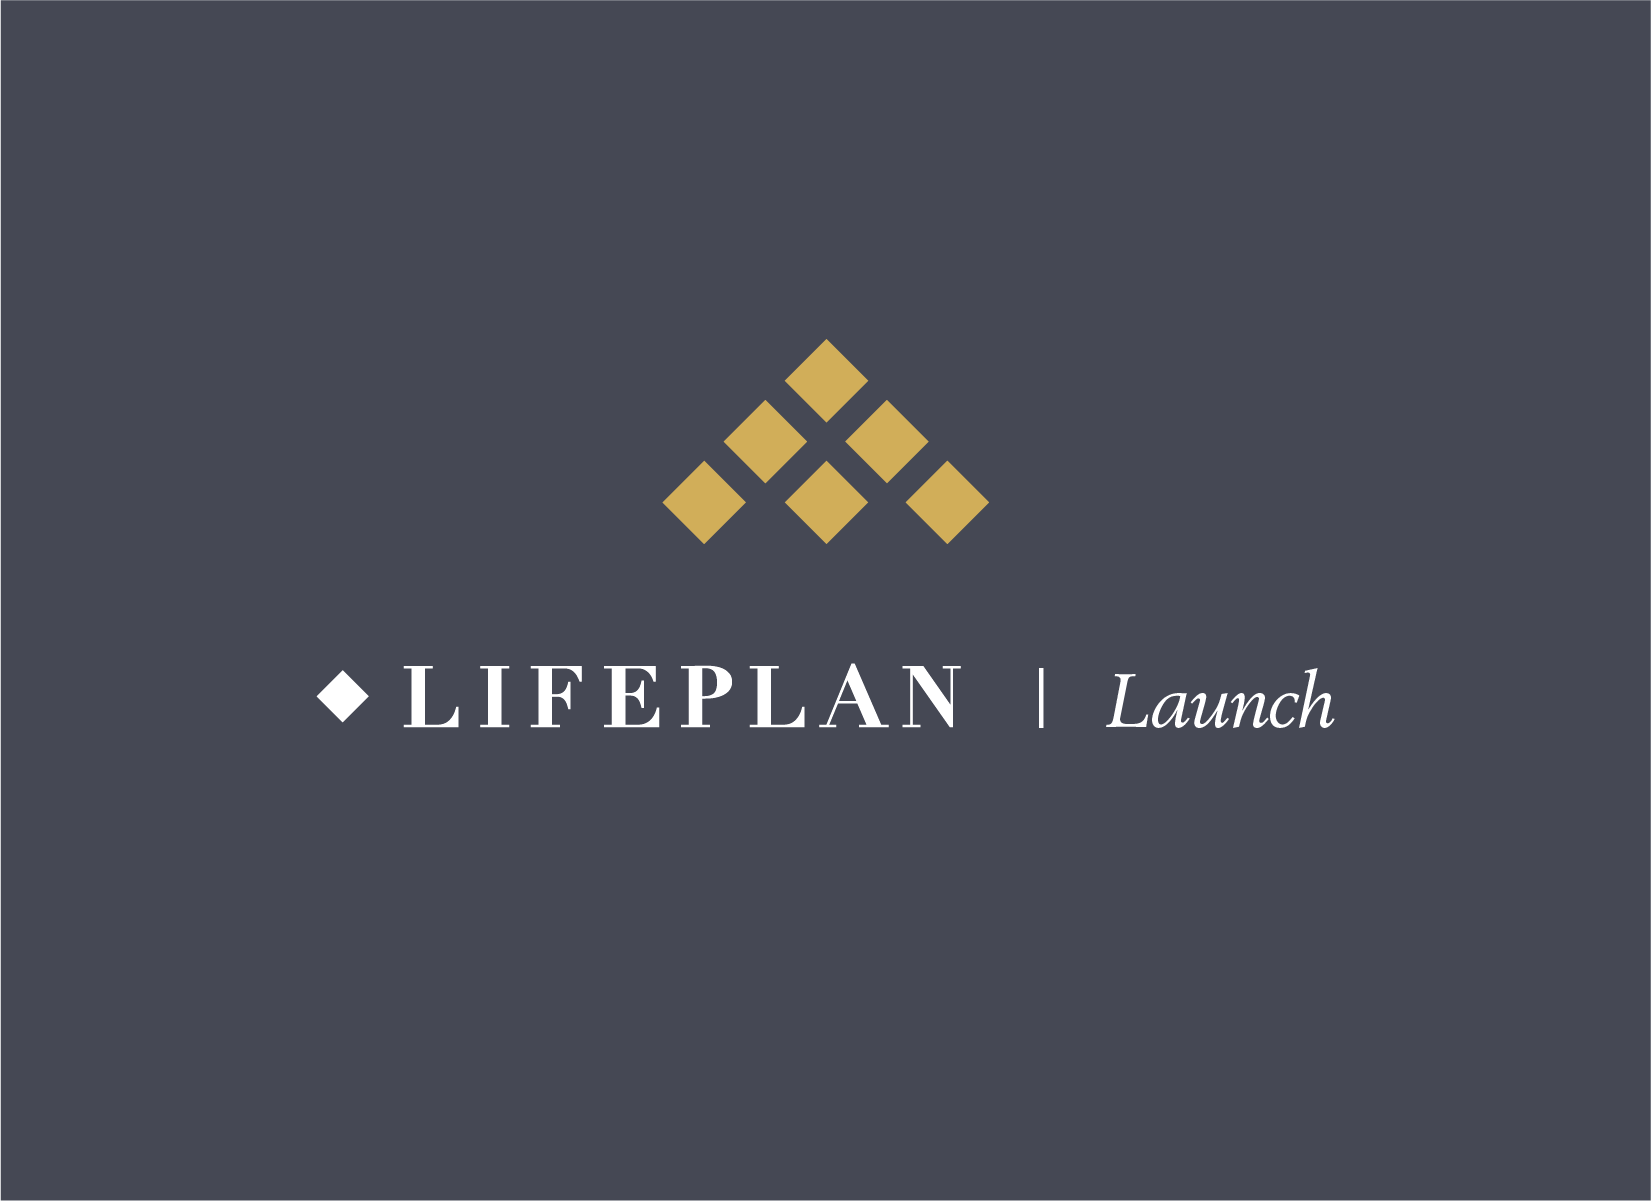 073: LifePlan Launch: Igniting Your Team's Contribution